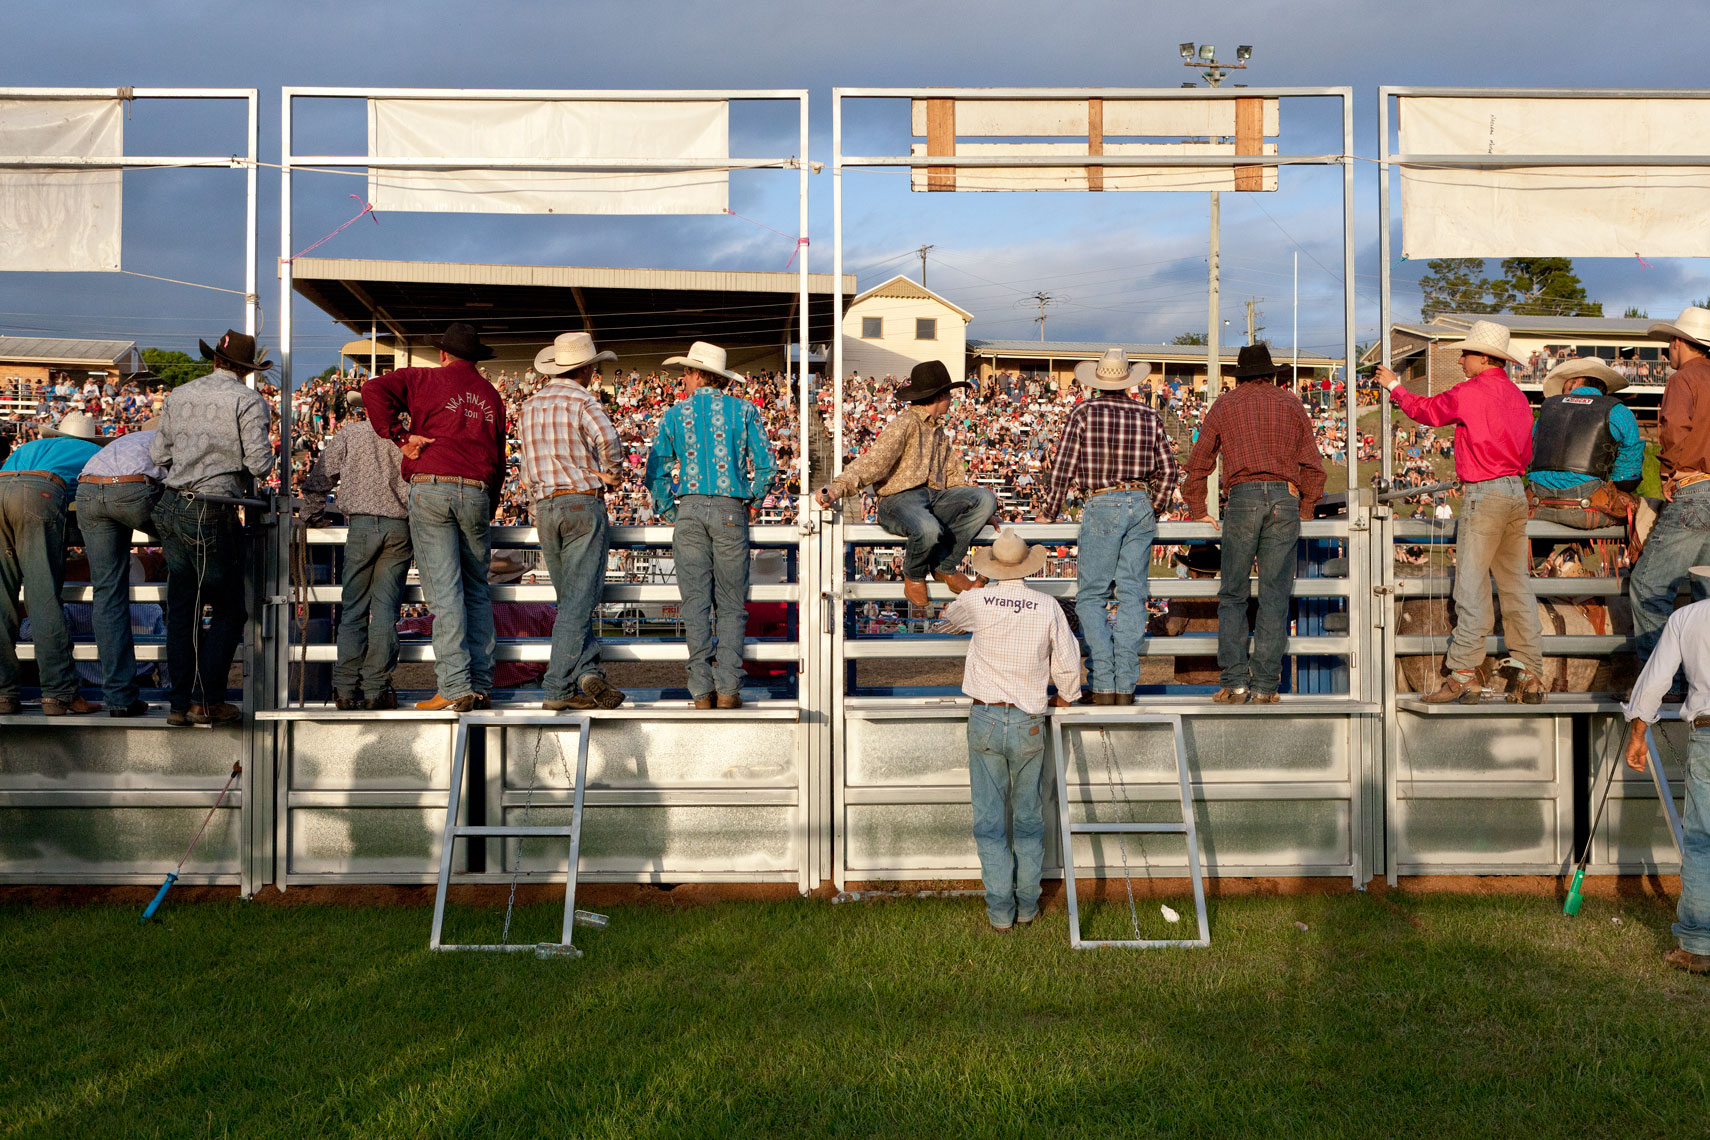 001_MacleanRodeo_MG_4383.jpg